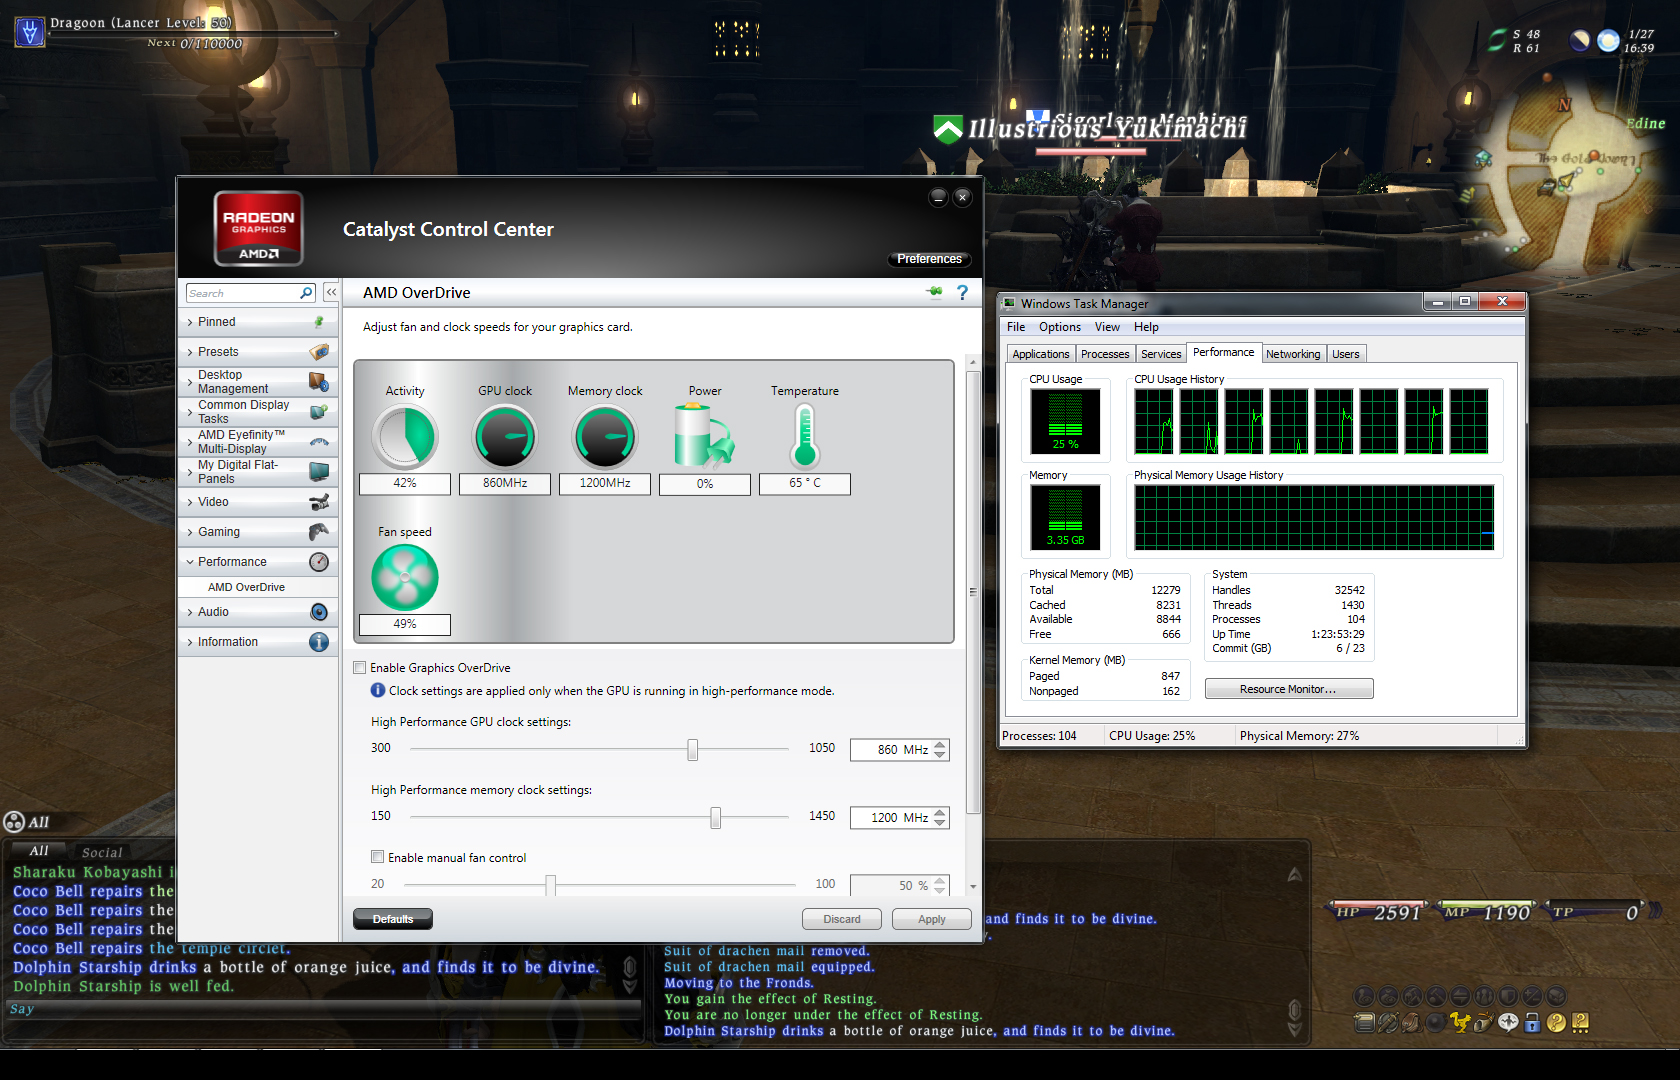 CPU / GPU underutilized